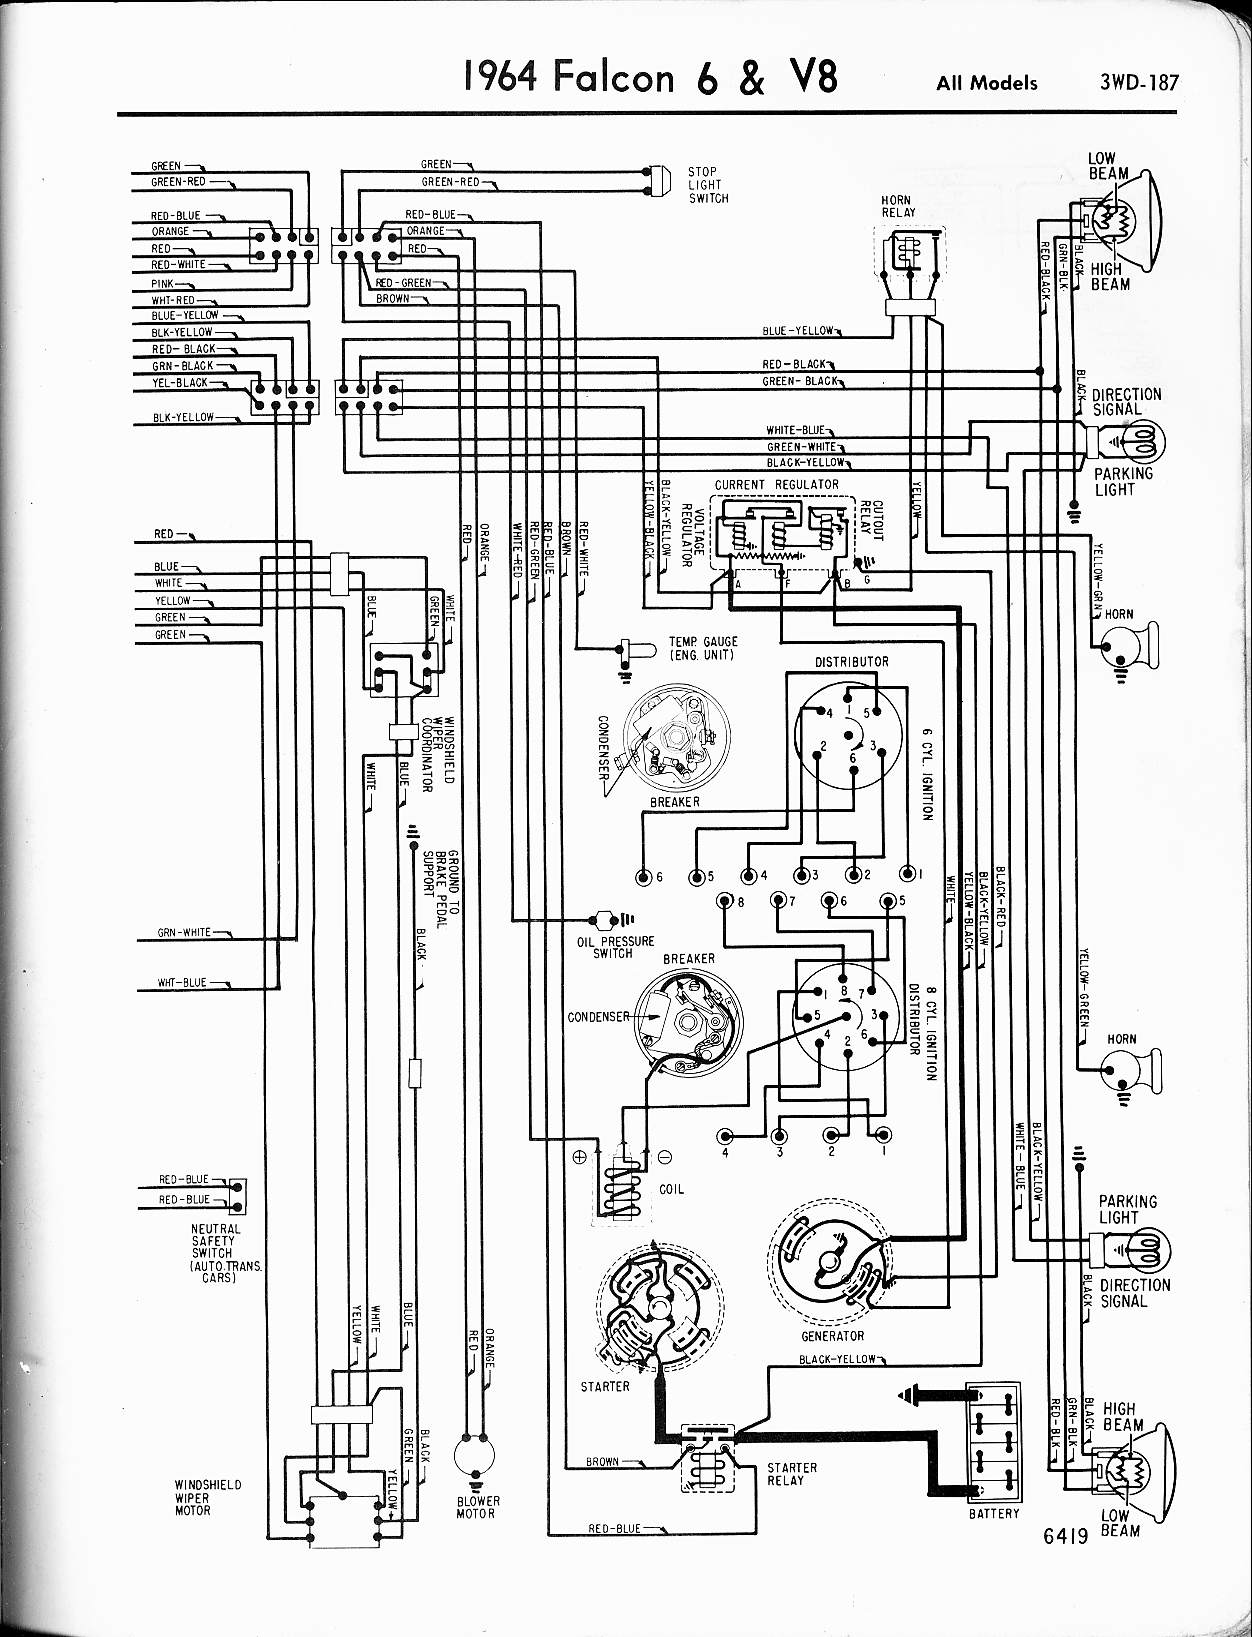 MWire5765 187 ba falcon wiring diagram 1965 mustang wiring harness diagram ba falcon wiring diagram free download at gsmportal.co